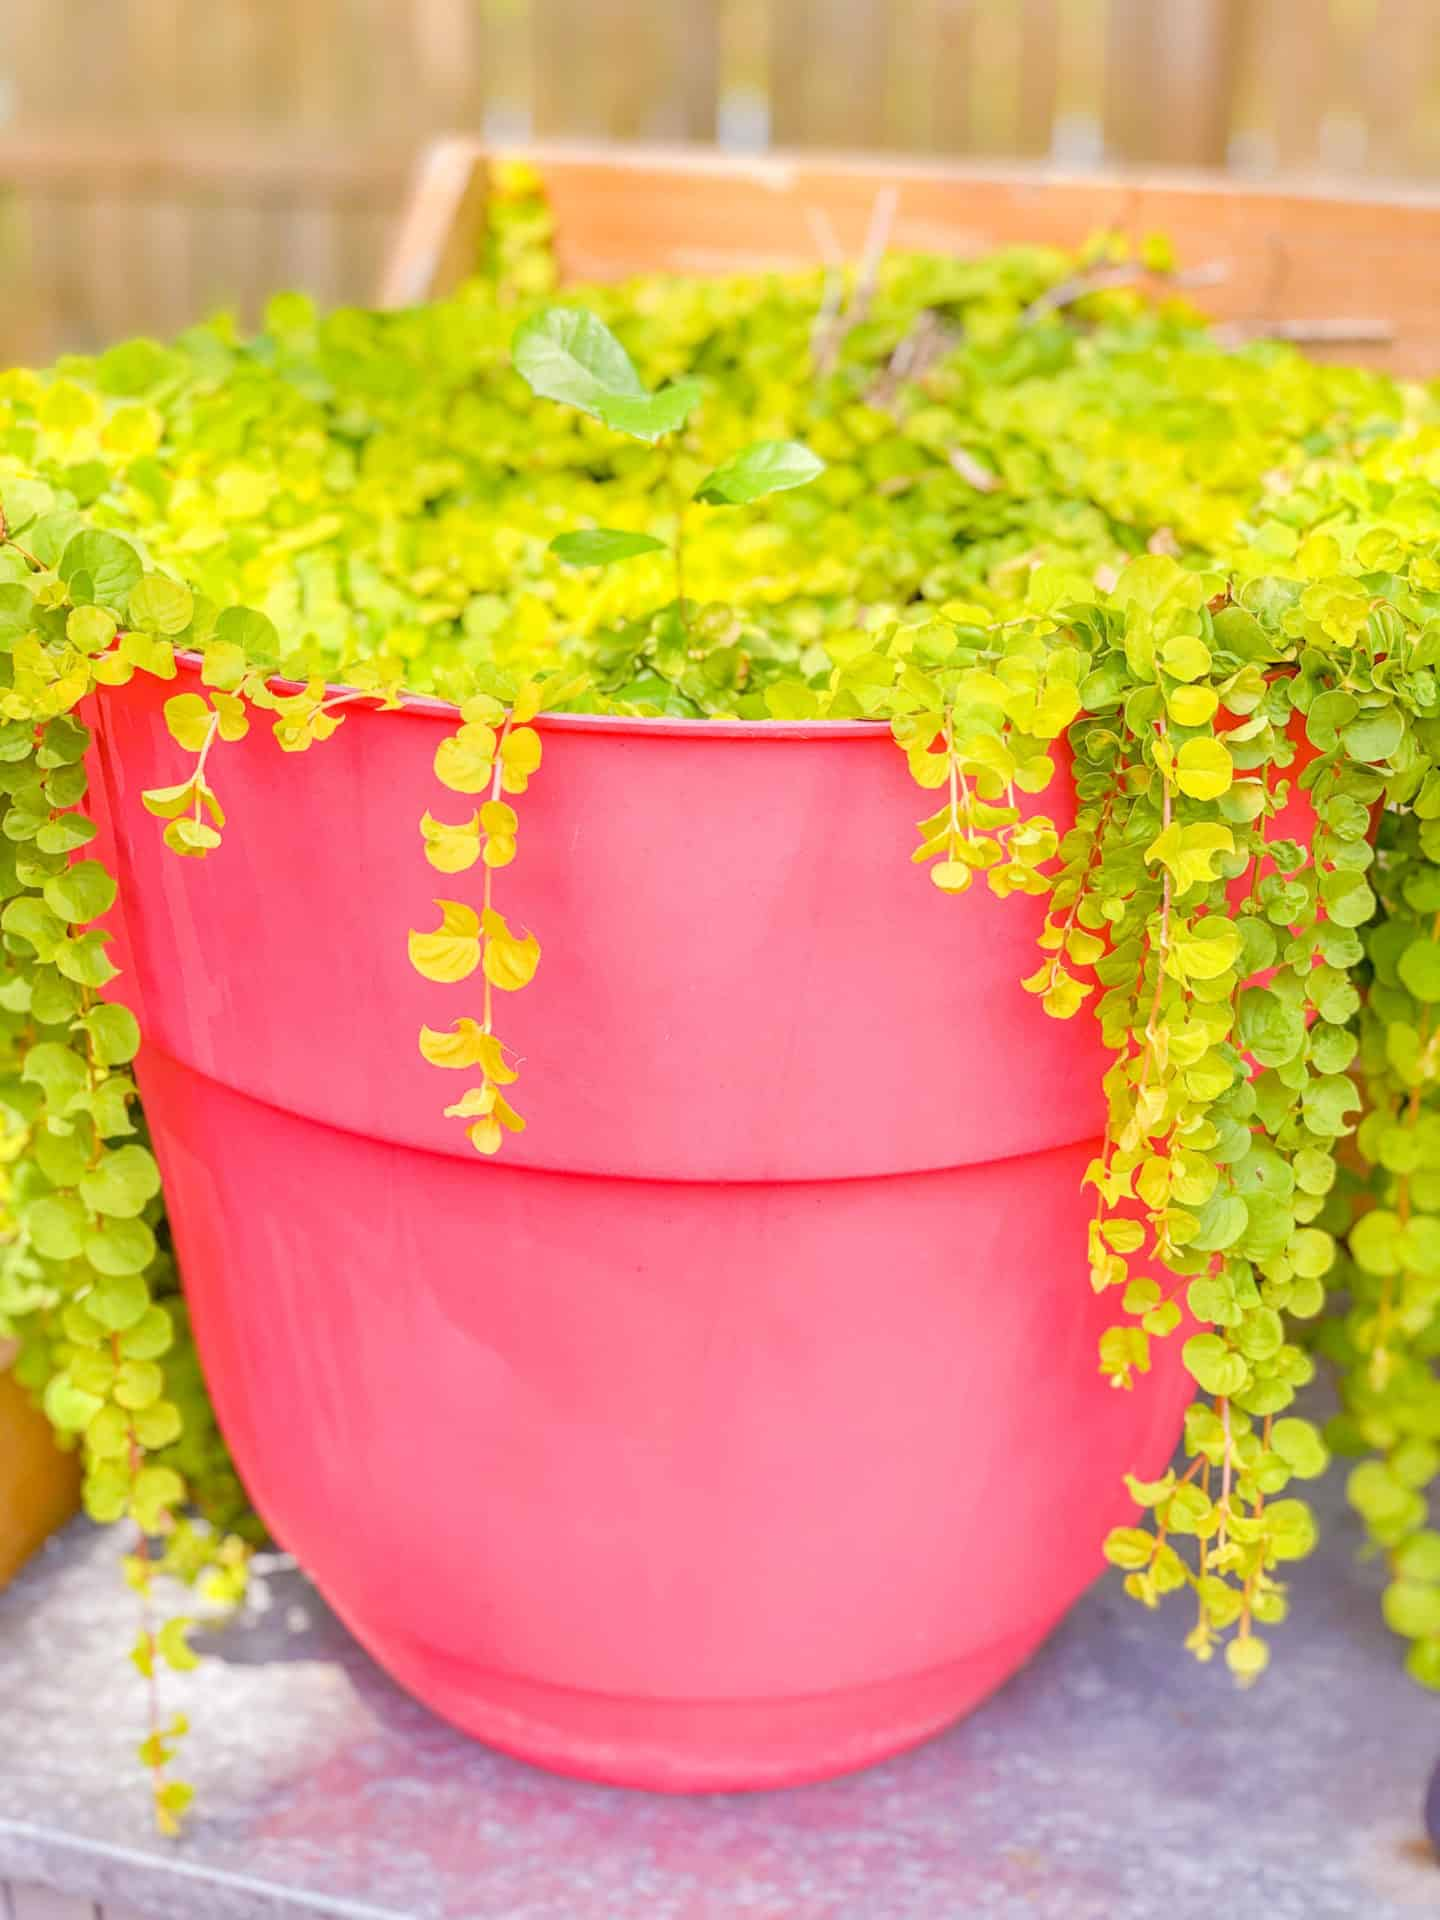 Best Ground Cover Plants Creeping Jenny